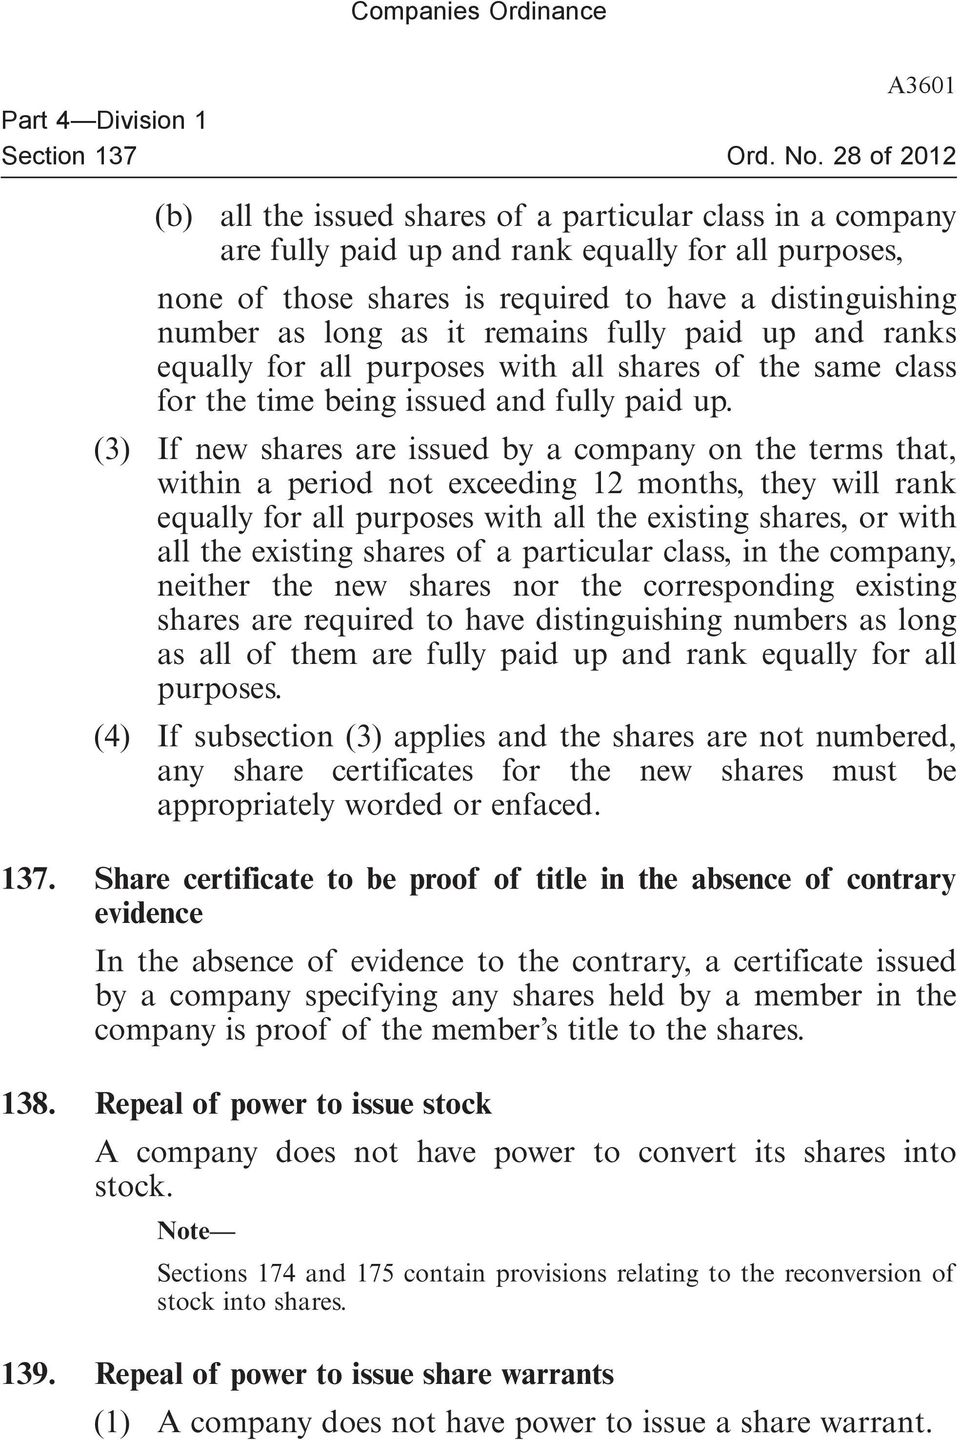 (3) If new shares are issued by a company on the terms that, within a period not exceeding 12 months, they will rank equally for all purposes with all the existing shares, or with all the existing